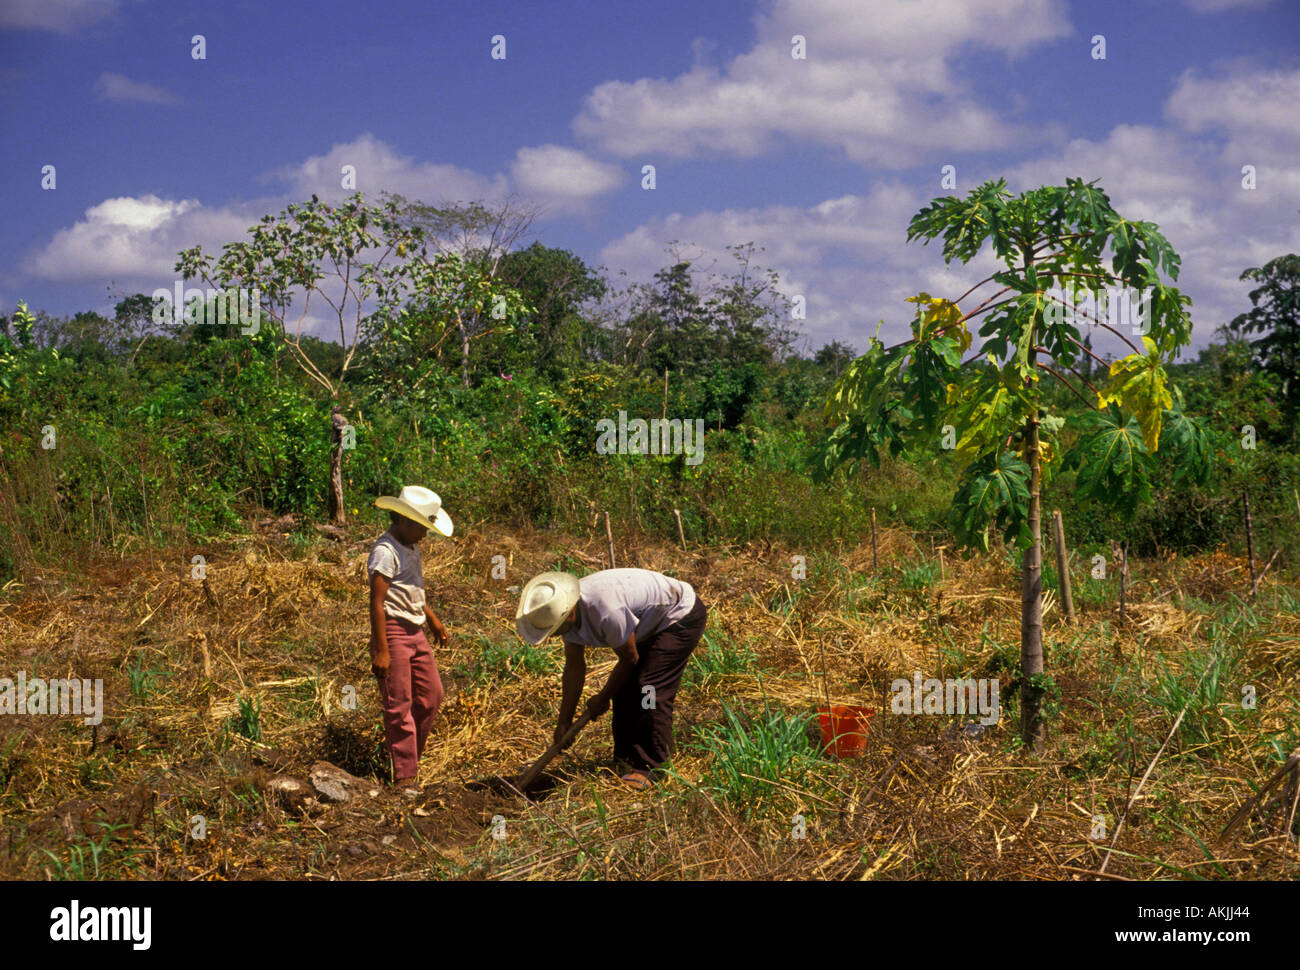 Agriculture yucatan